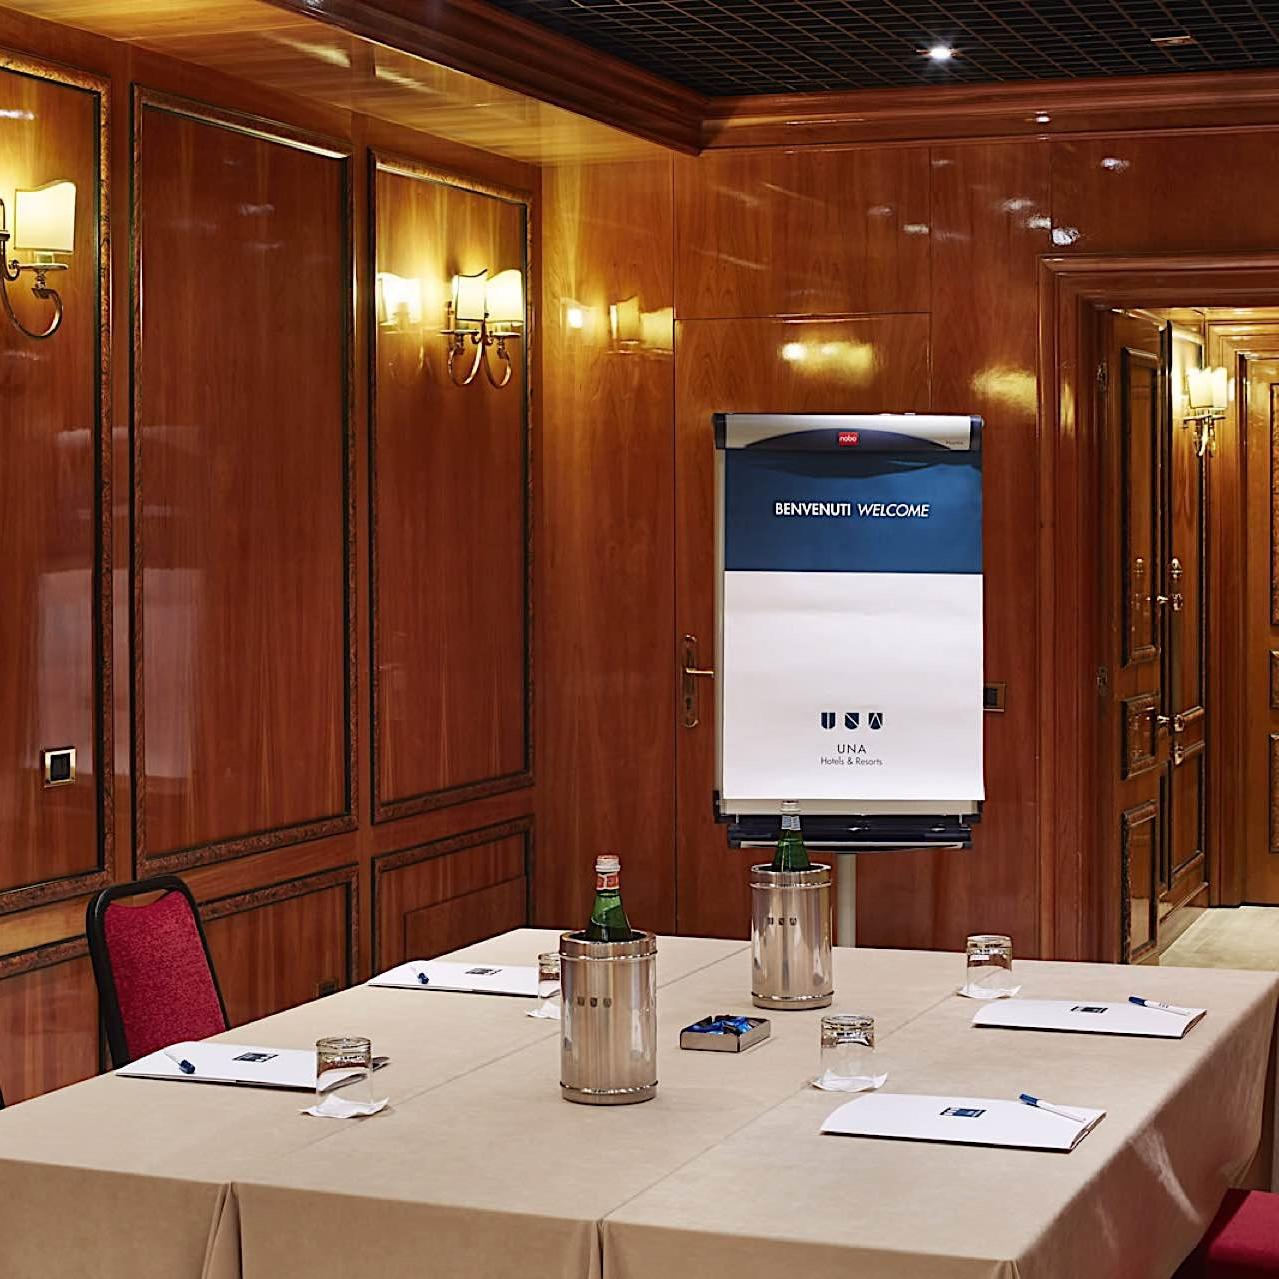 Finlandia Meeting Room | Scandinavia Milano